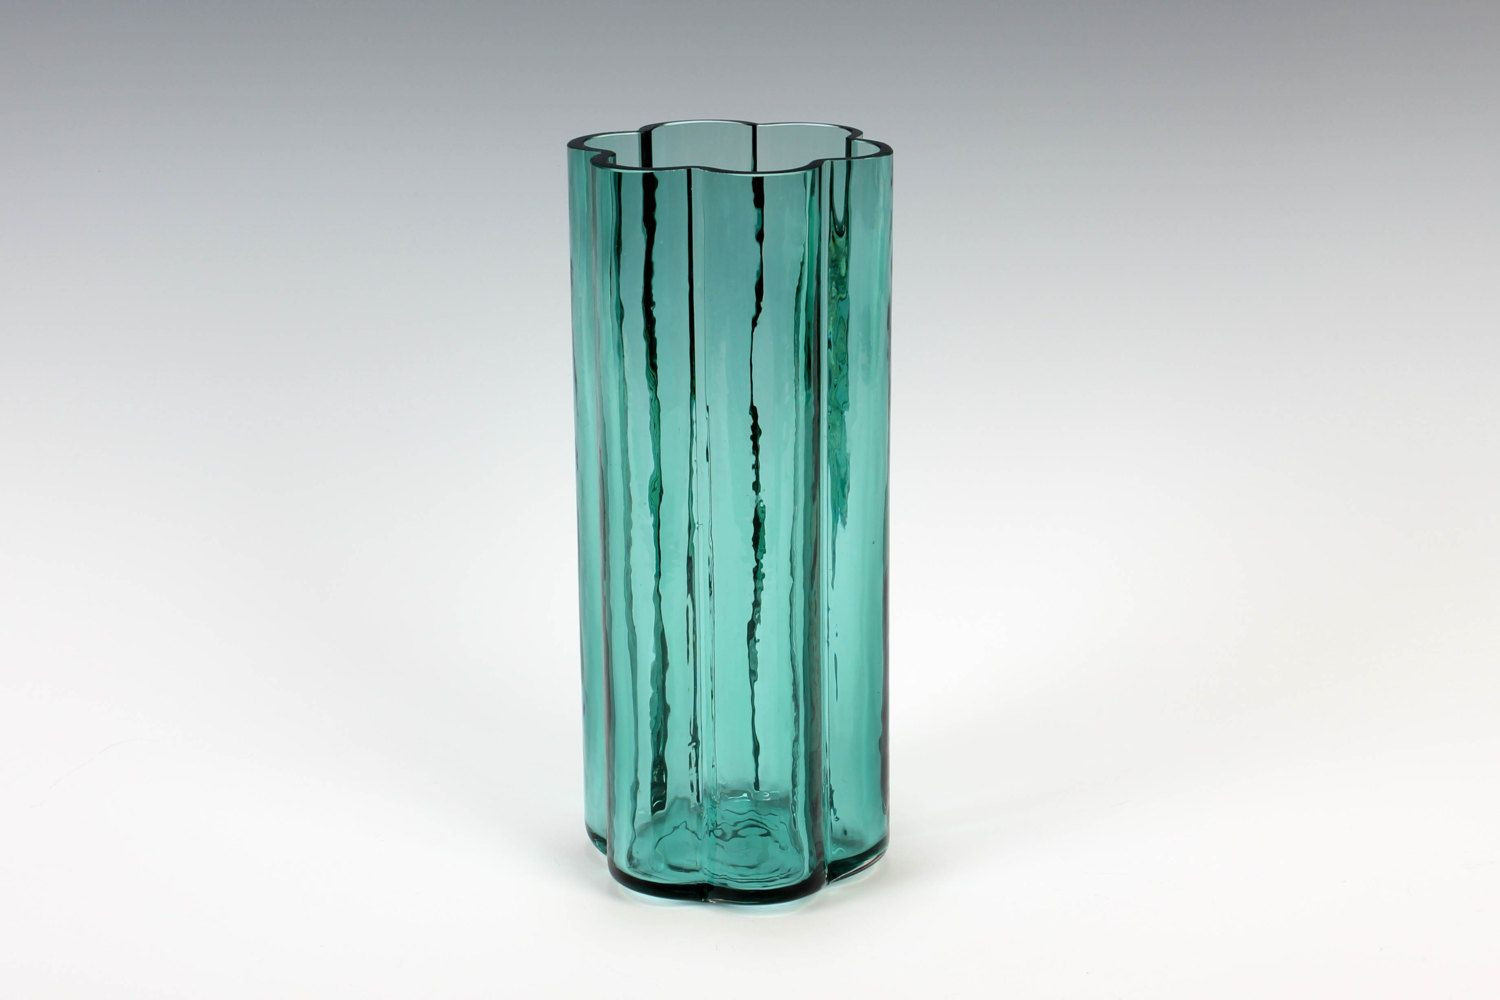 Green Glass Cylinder Vase Of Dansk Glass Flower Vase by Jens Quistgaard and Ritva Puotila Made In Dansk Glass Flower Vase by Jens Quistgaard and Ritva Puotila Made In Finland Aqua 8 5 Inch by thepapers On Etsy